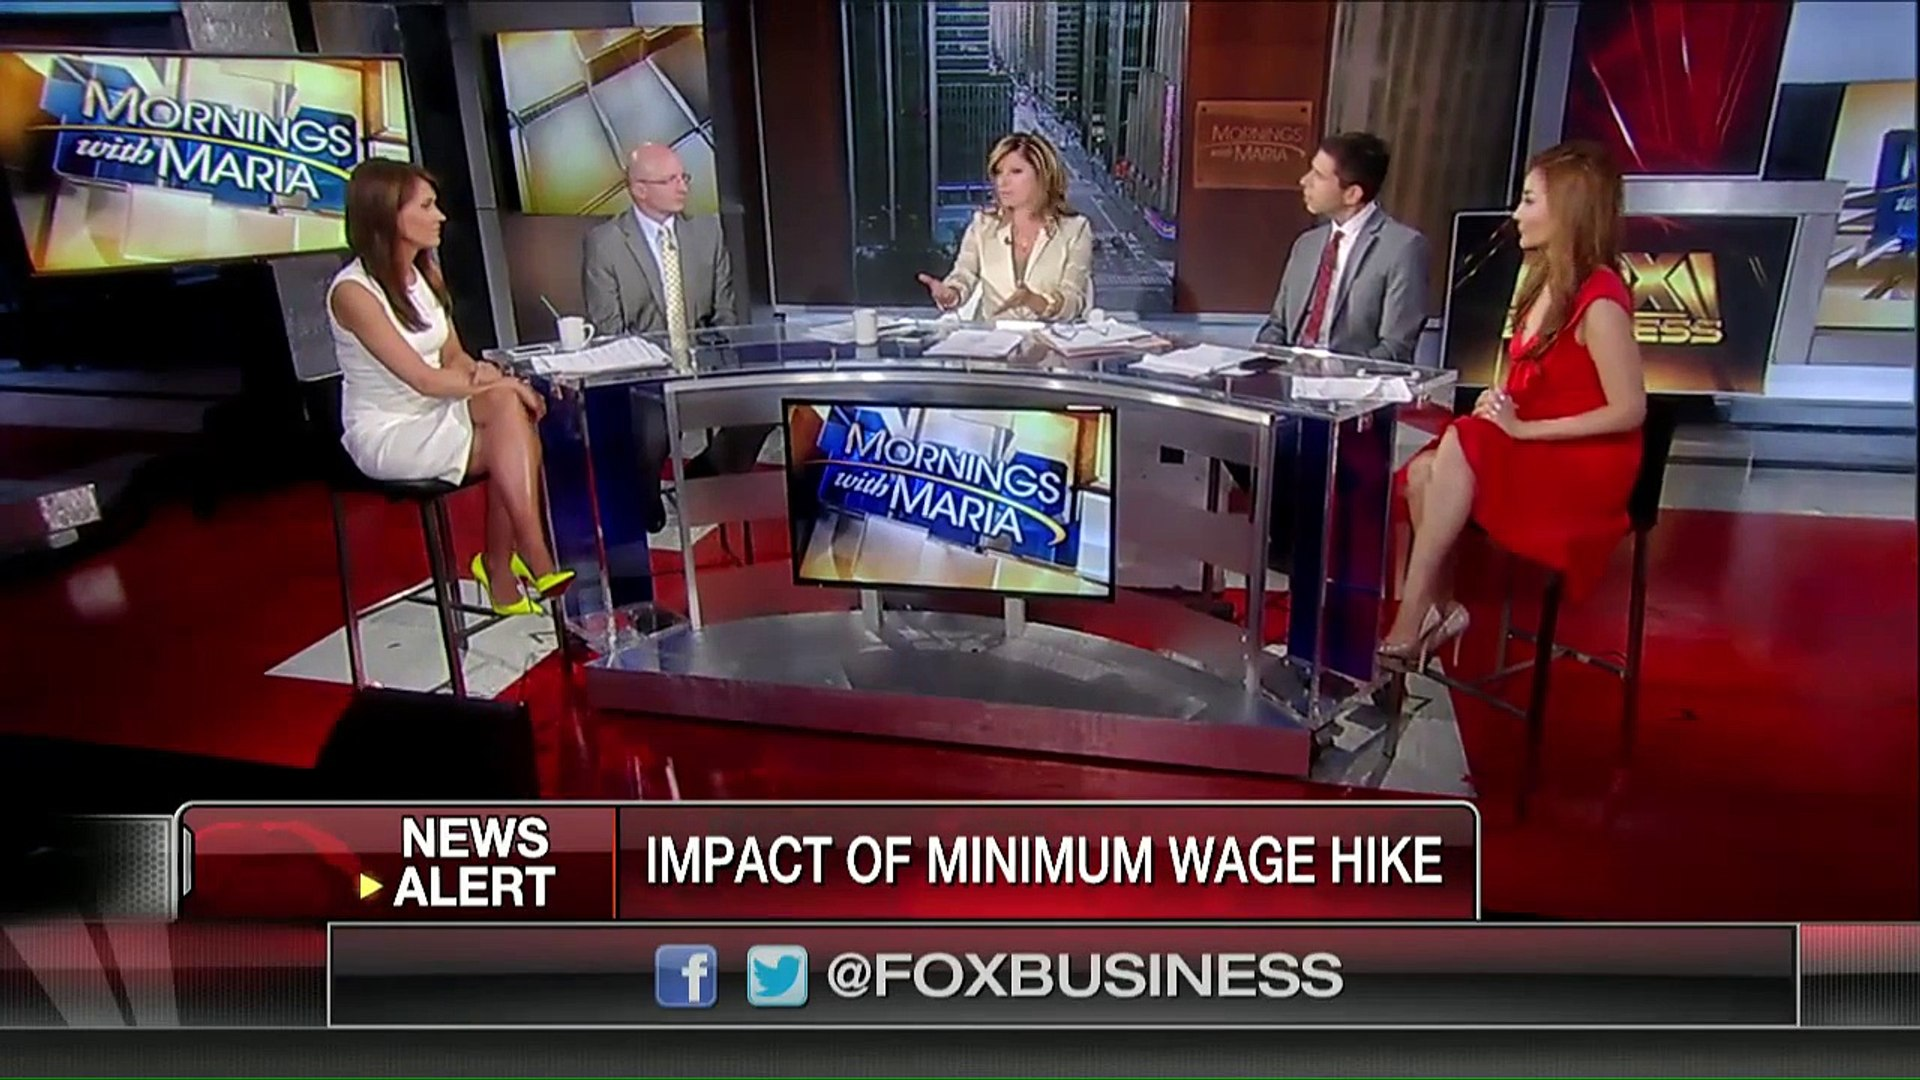 The implications of raising minimum wage to $15